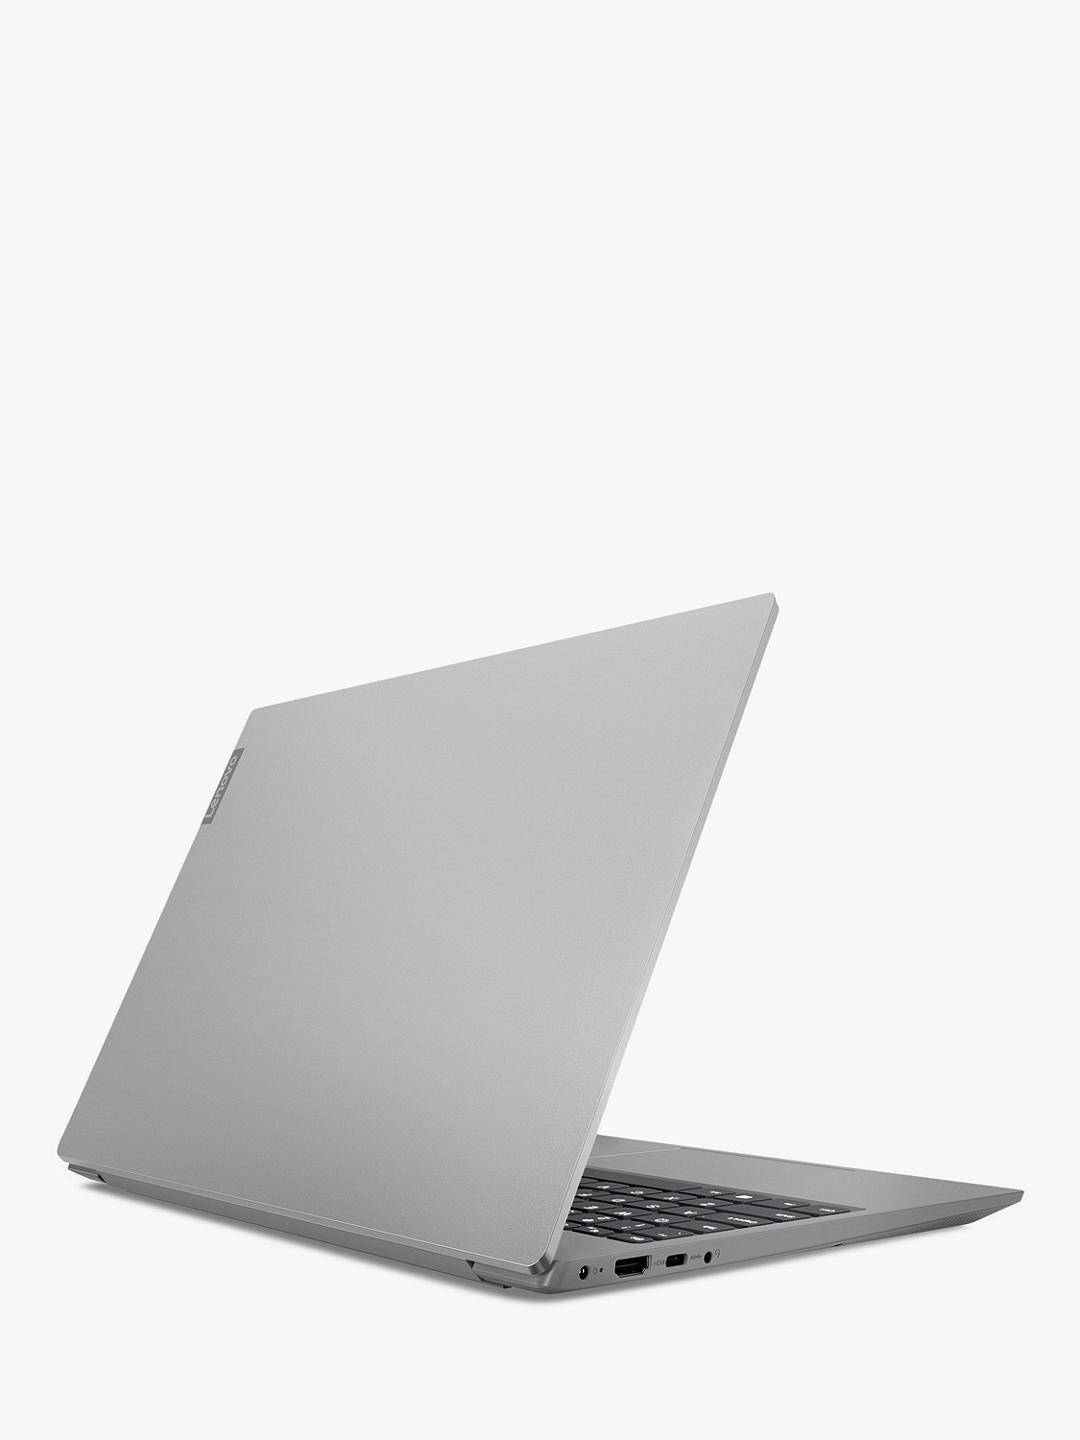 "Buy Lenovo IdeaPad S340-15IIL Laptop, Intel Core i5 Processor, 8GB RAM, 256GB SSD, 15.6"" Full HD, Platinum Grey Online at johnlewis.com"